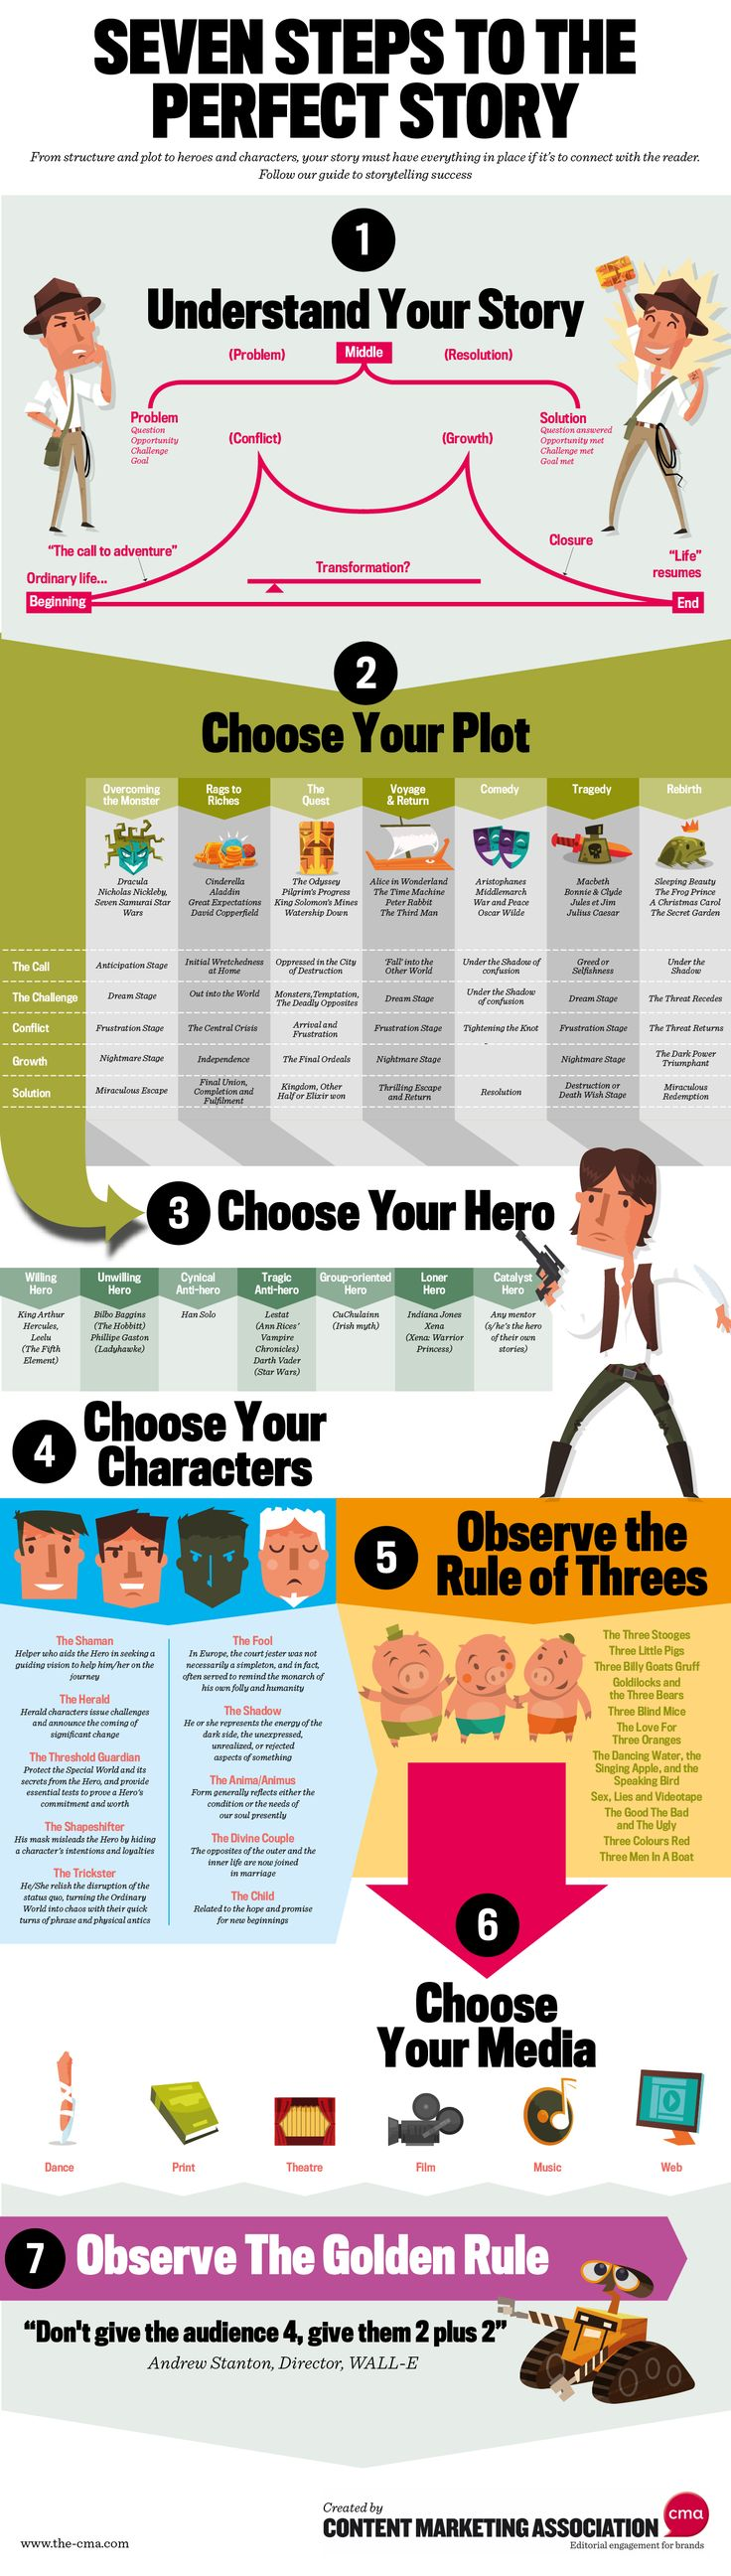 SEVEN STEPS TO THE PERFECT STORY [Fun Infographic]